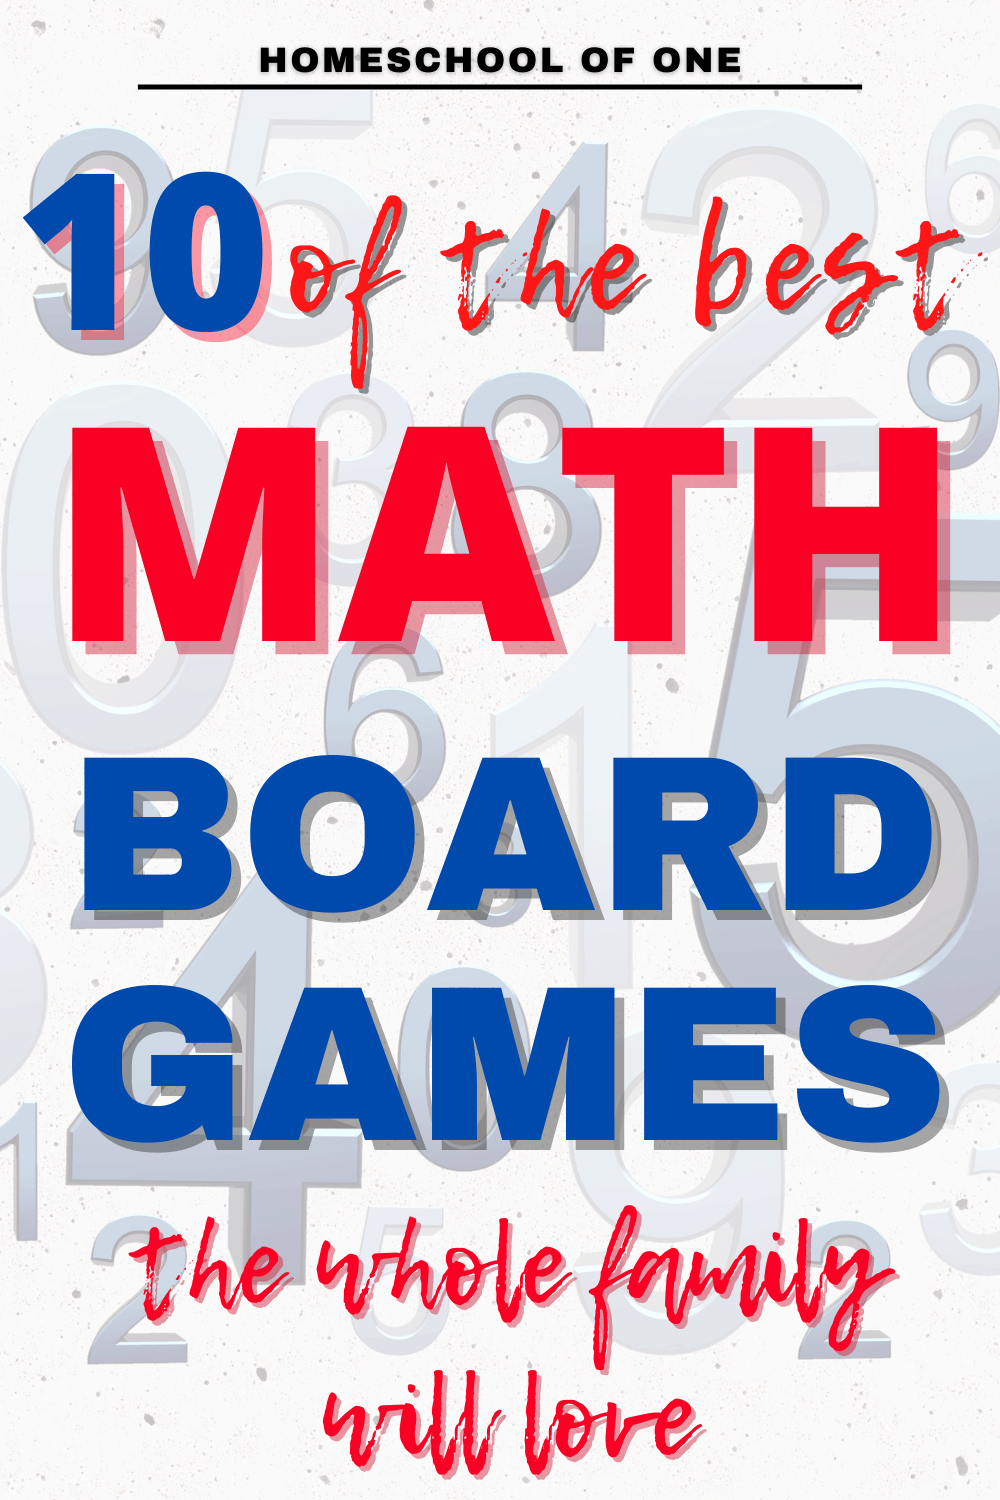 10 of the best math board games. If you love playing board games as a family, you will absolutely love these math board games, perfect for homeschool. #math #boardgames